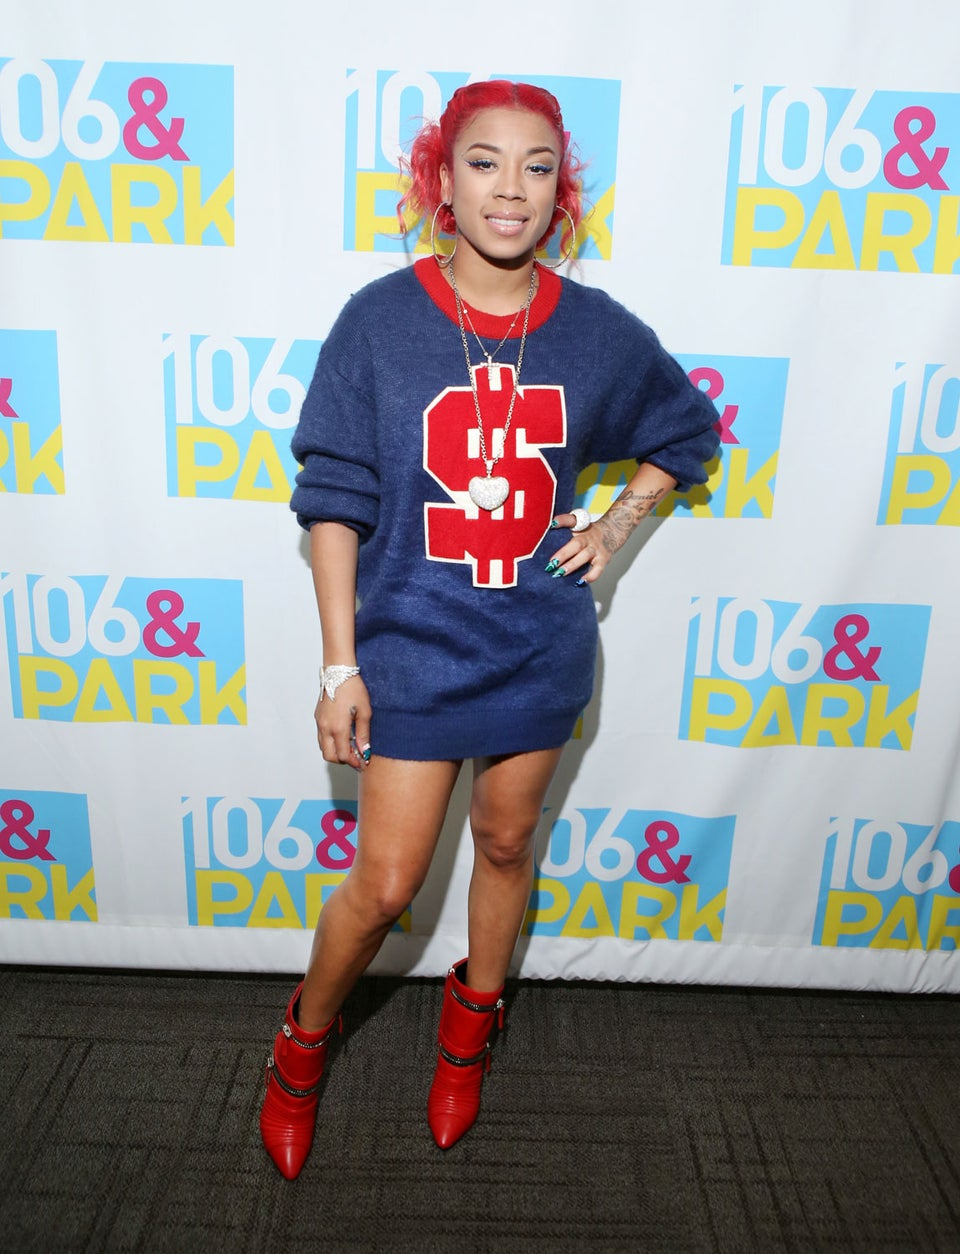 Assaulted Woman Files a Restraining Order Against Keyshia Cole